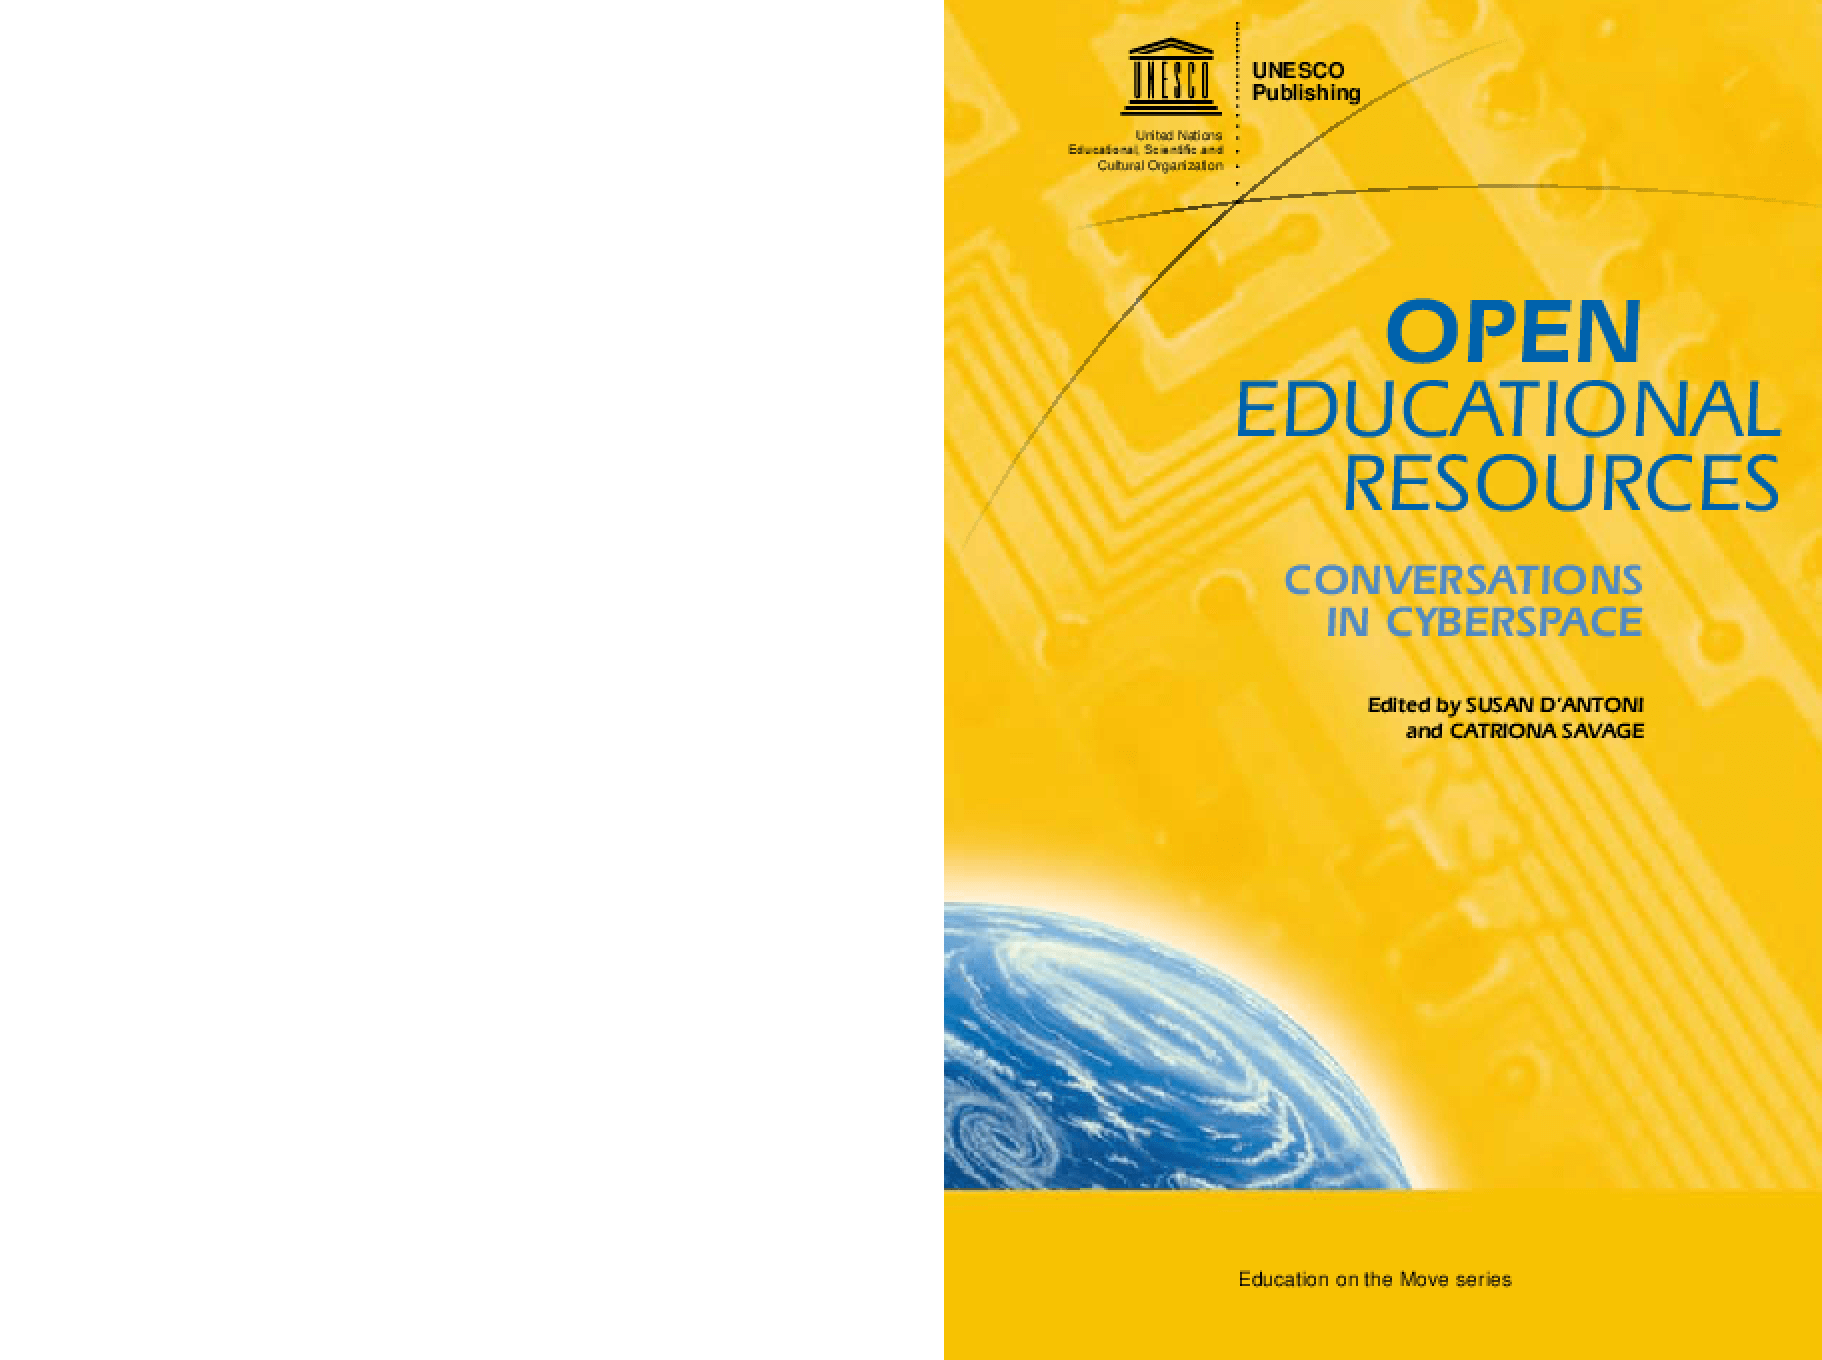 Open Educational Resources: Conversations in Cyberspace